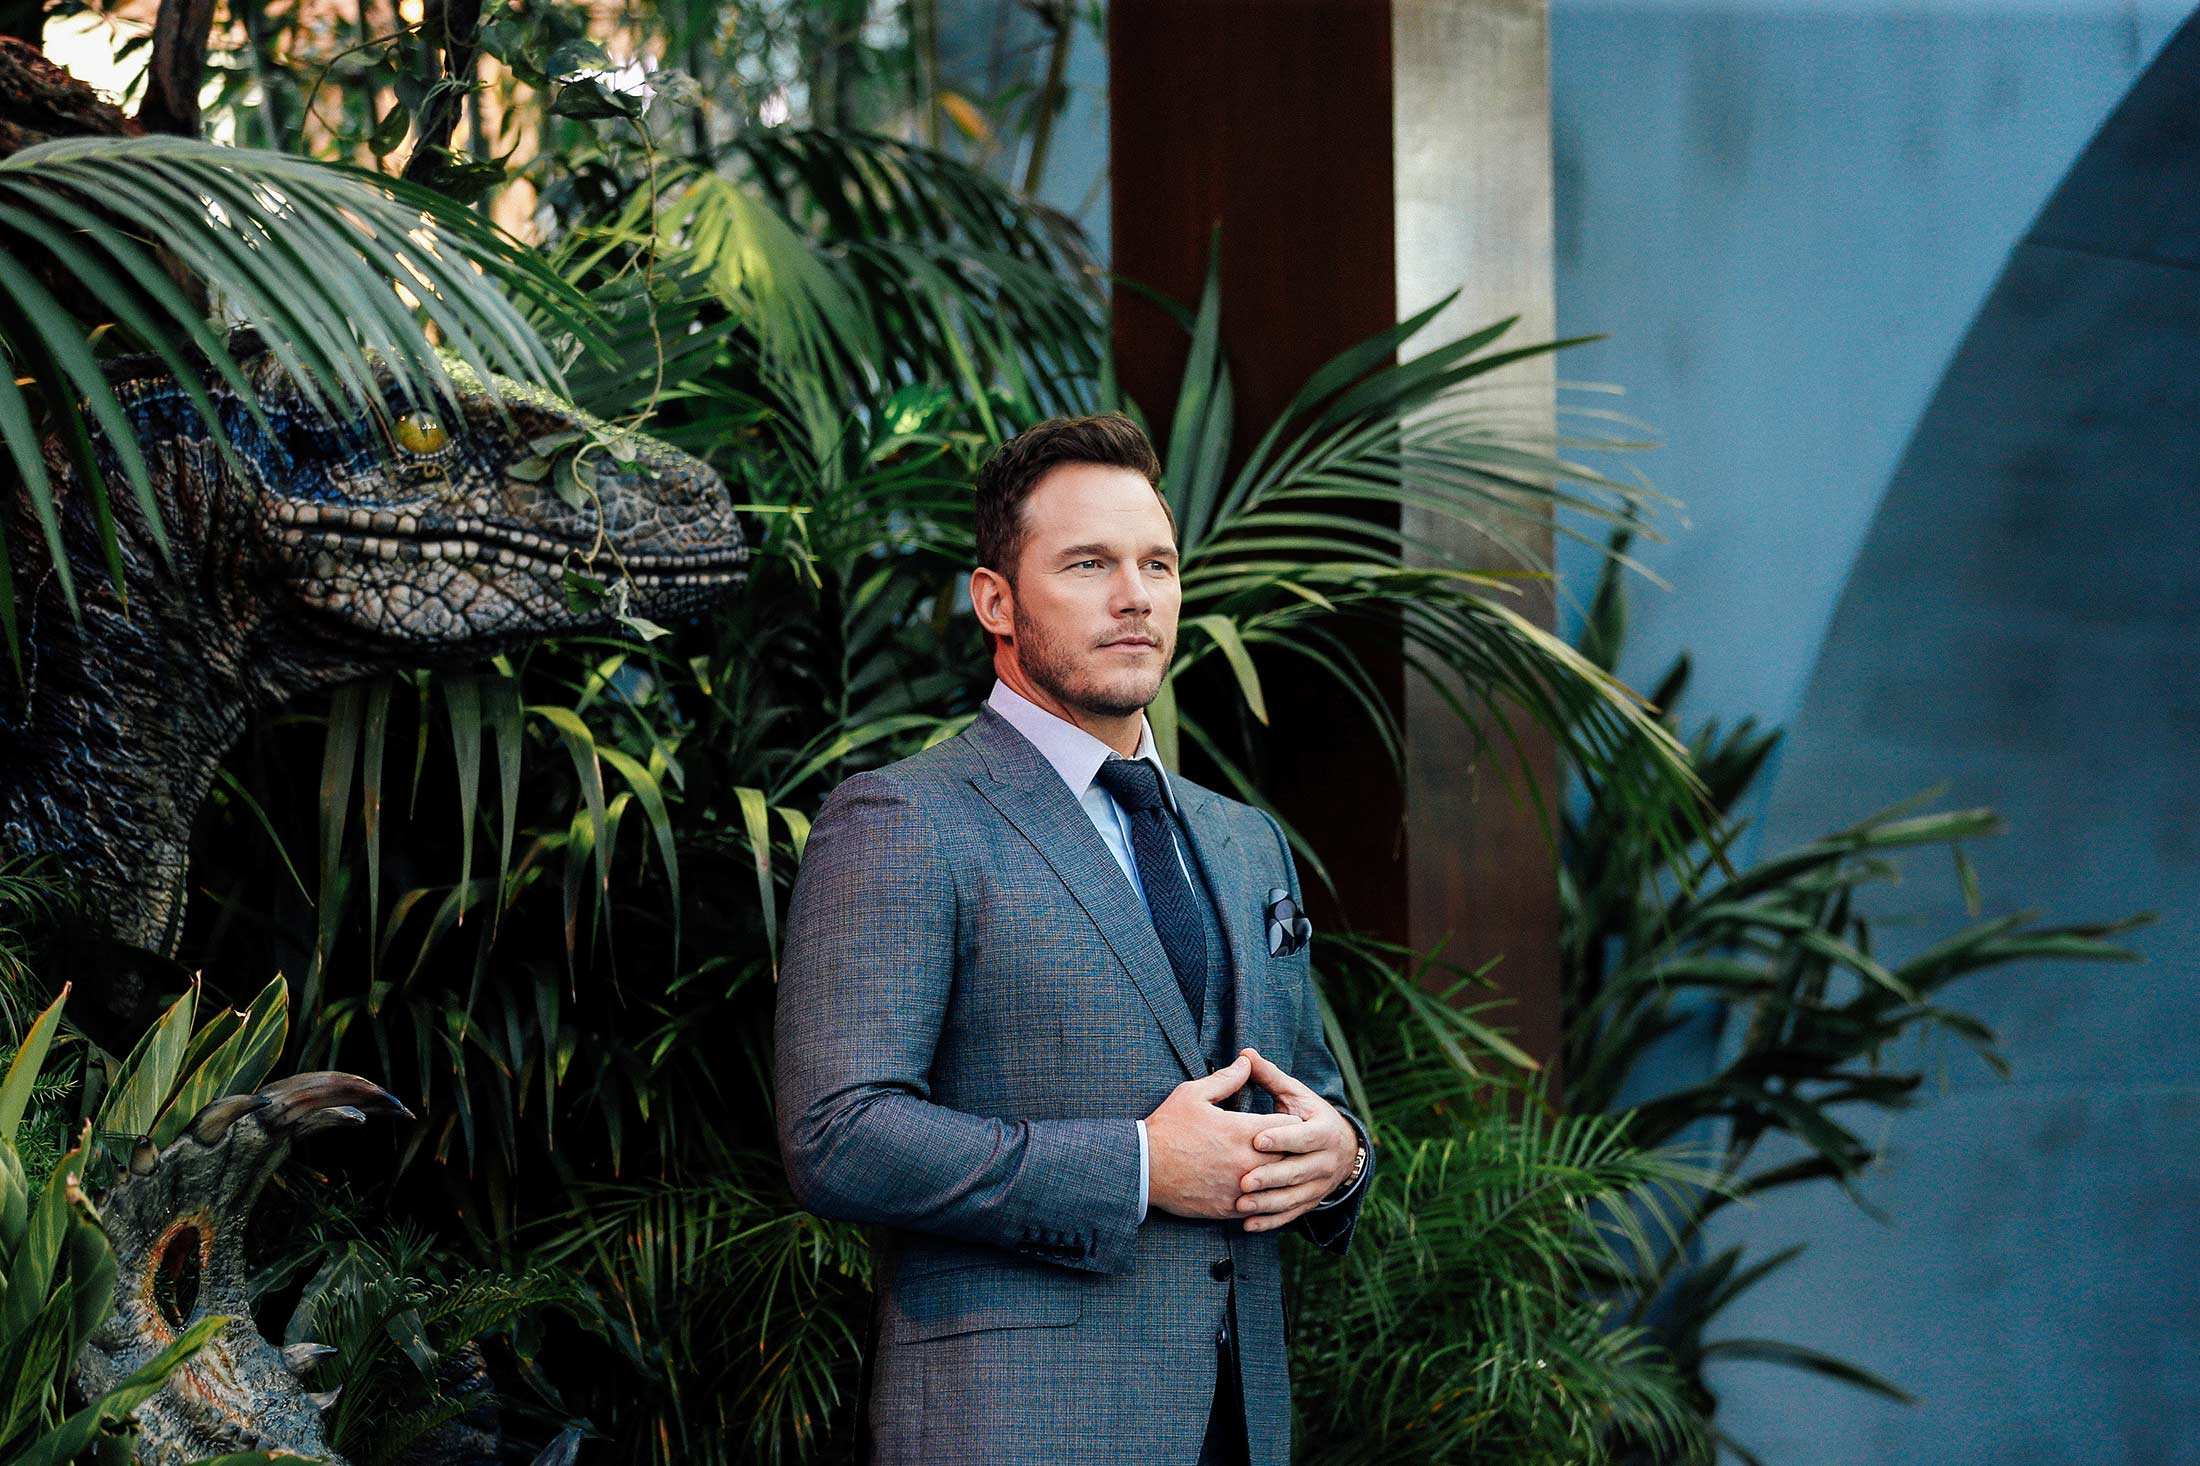 Chris Pratt stands looking solemn, wearing a suit with hands touching and thumbs tented, in front of a backdrop of tropical plants.